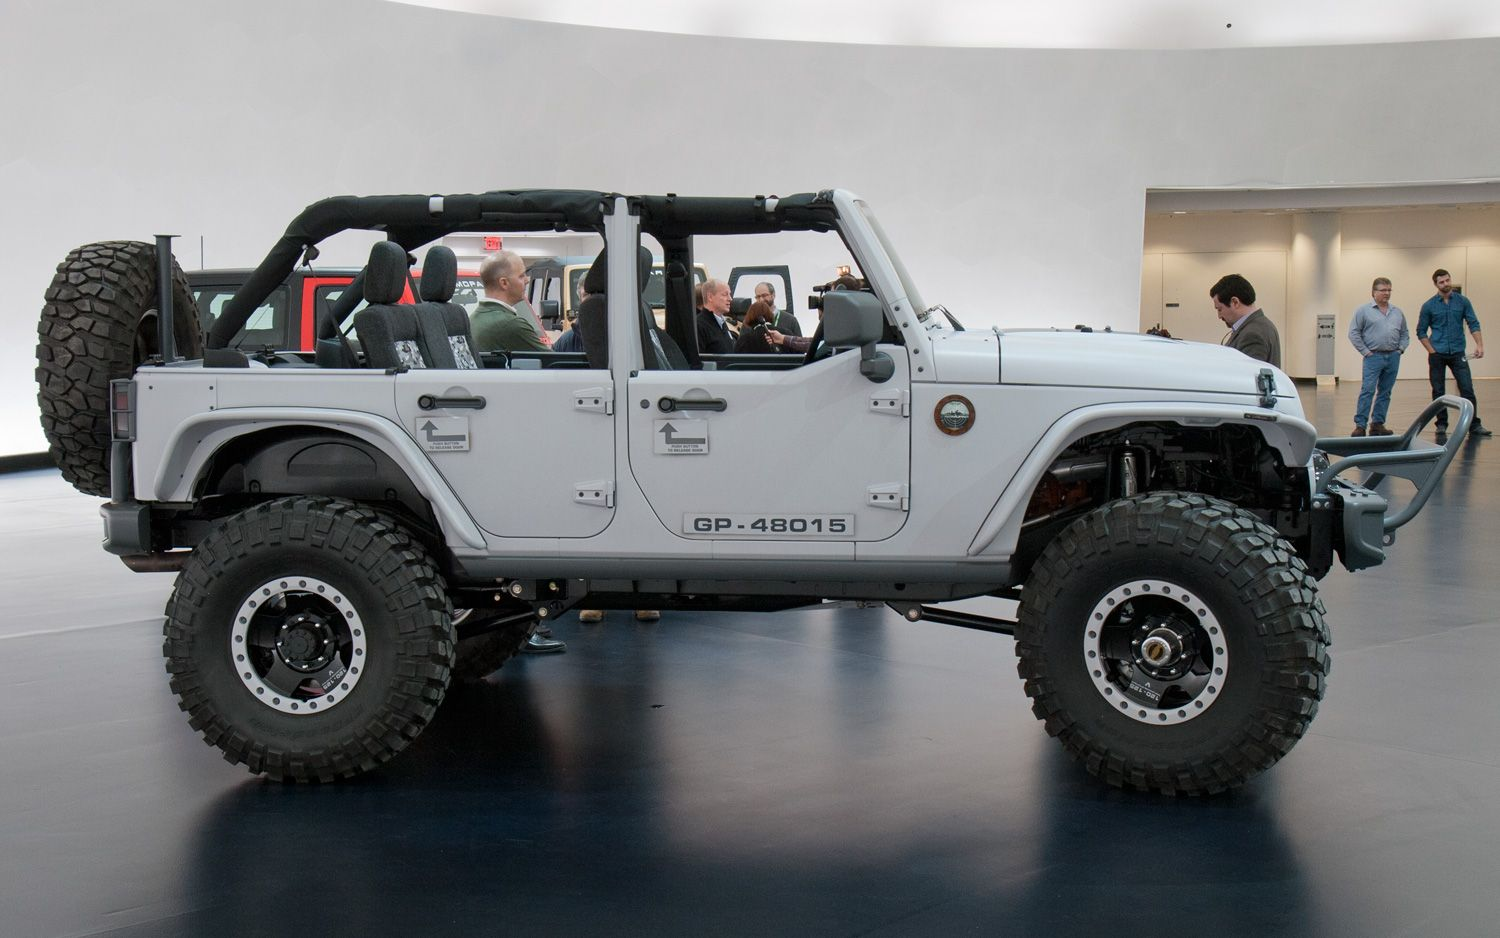 2016 jeep wrangler | mopar-jeep-wrangler-recon-concept-side-view, photo  #214689 - rumor